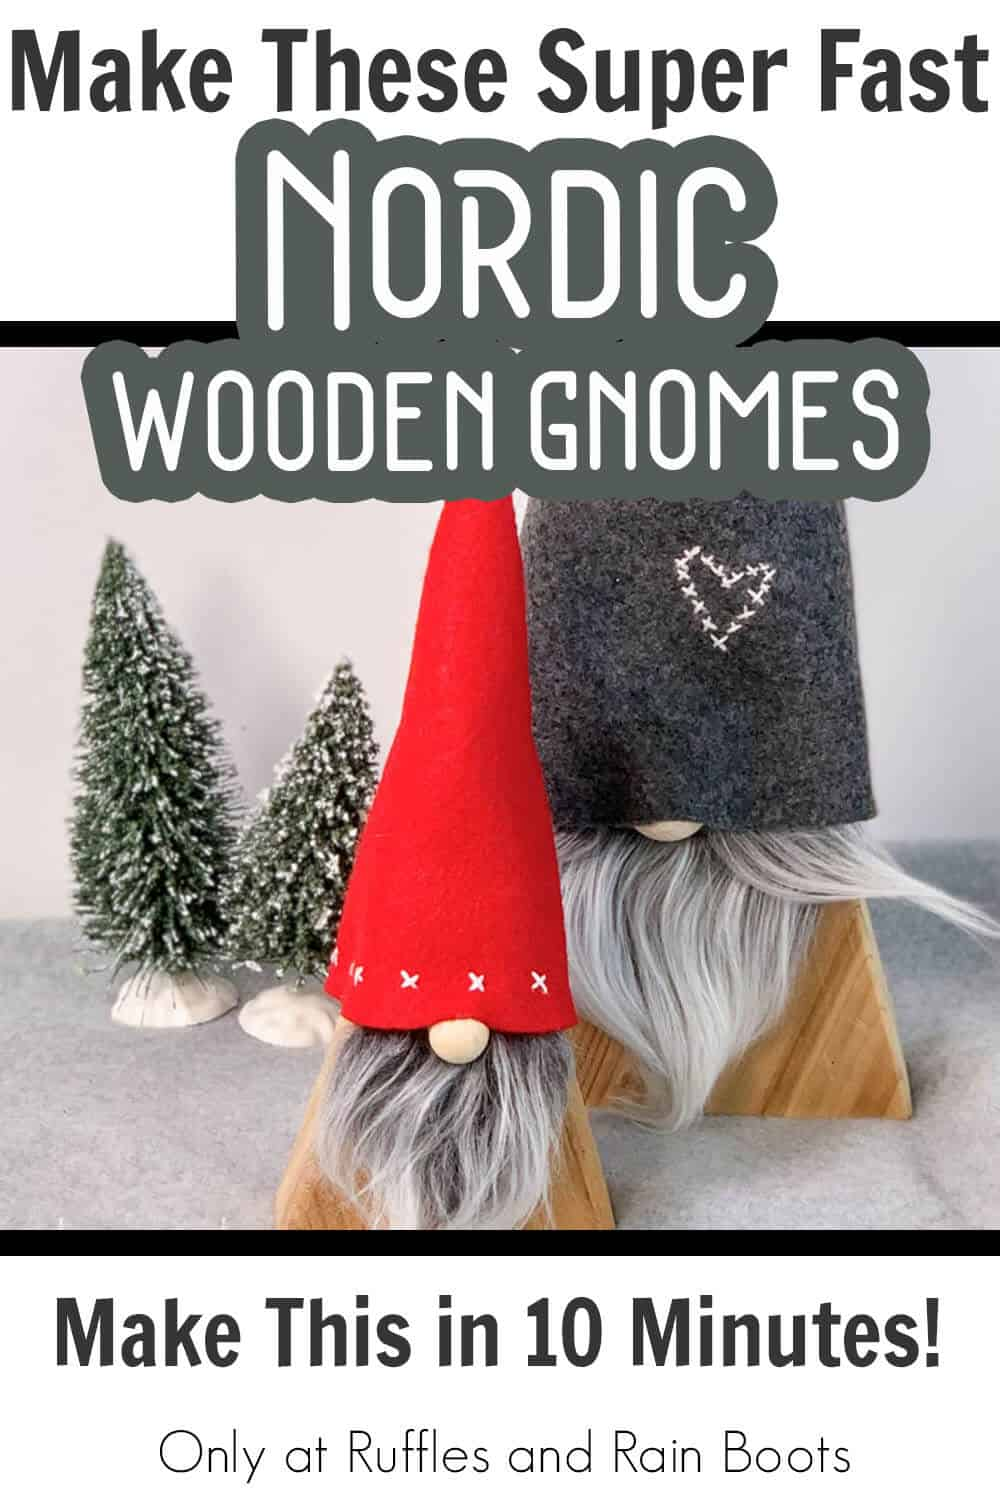 nordic style wood gnomes for farmhouse decor with text which reads make these super fast nordic wooden gnomes make this in 15 minutes!